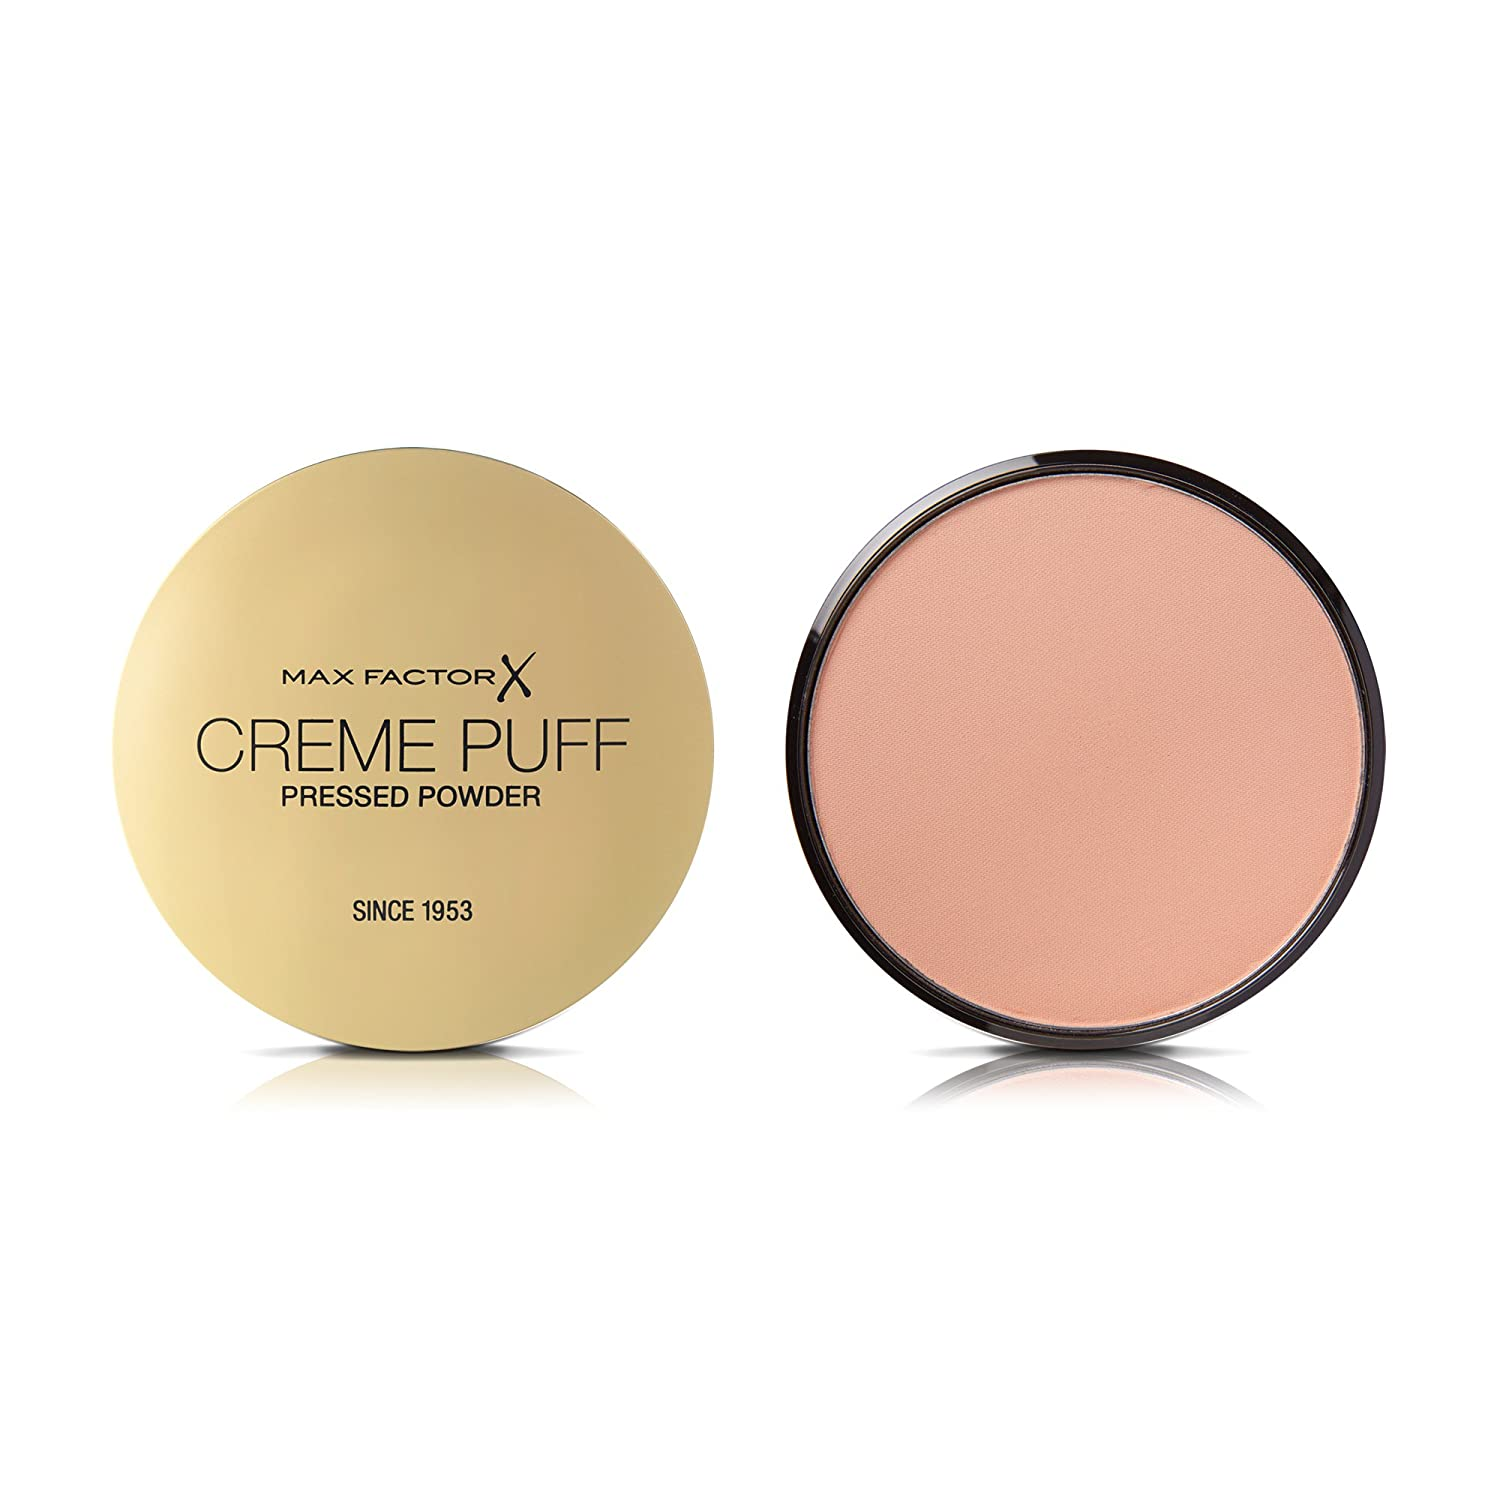 Max Factor Cream Puff Pressed Compact Powder, 21 g, 13 Nouveau Beige 81491501